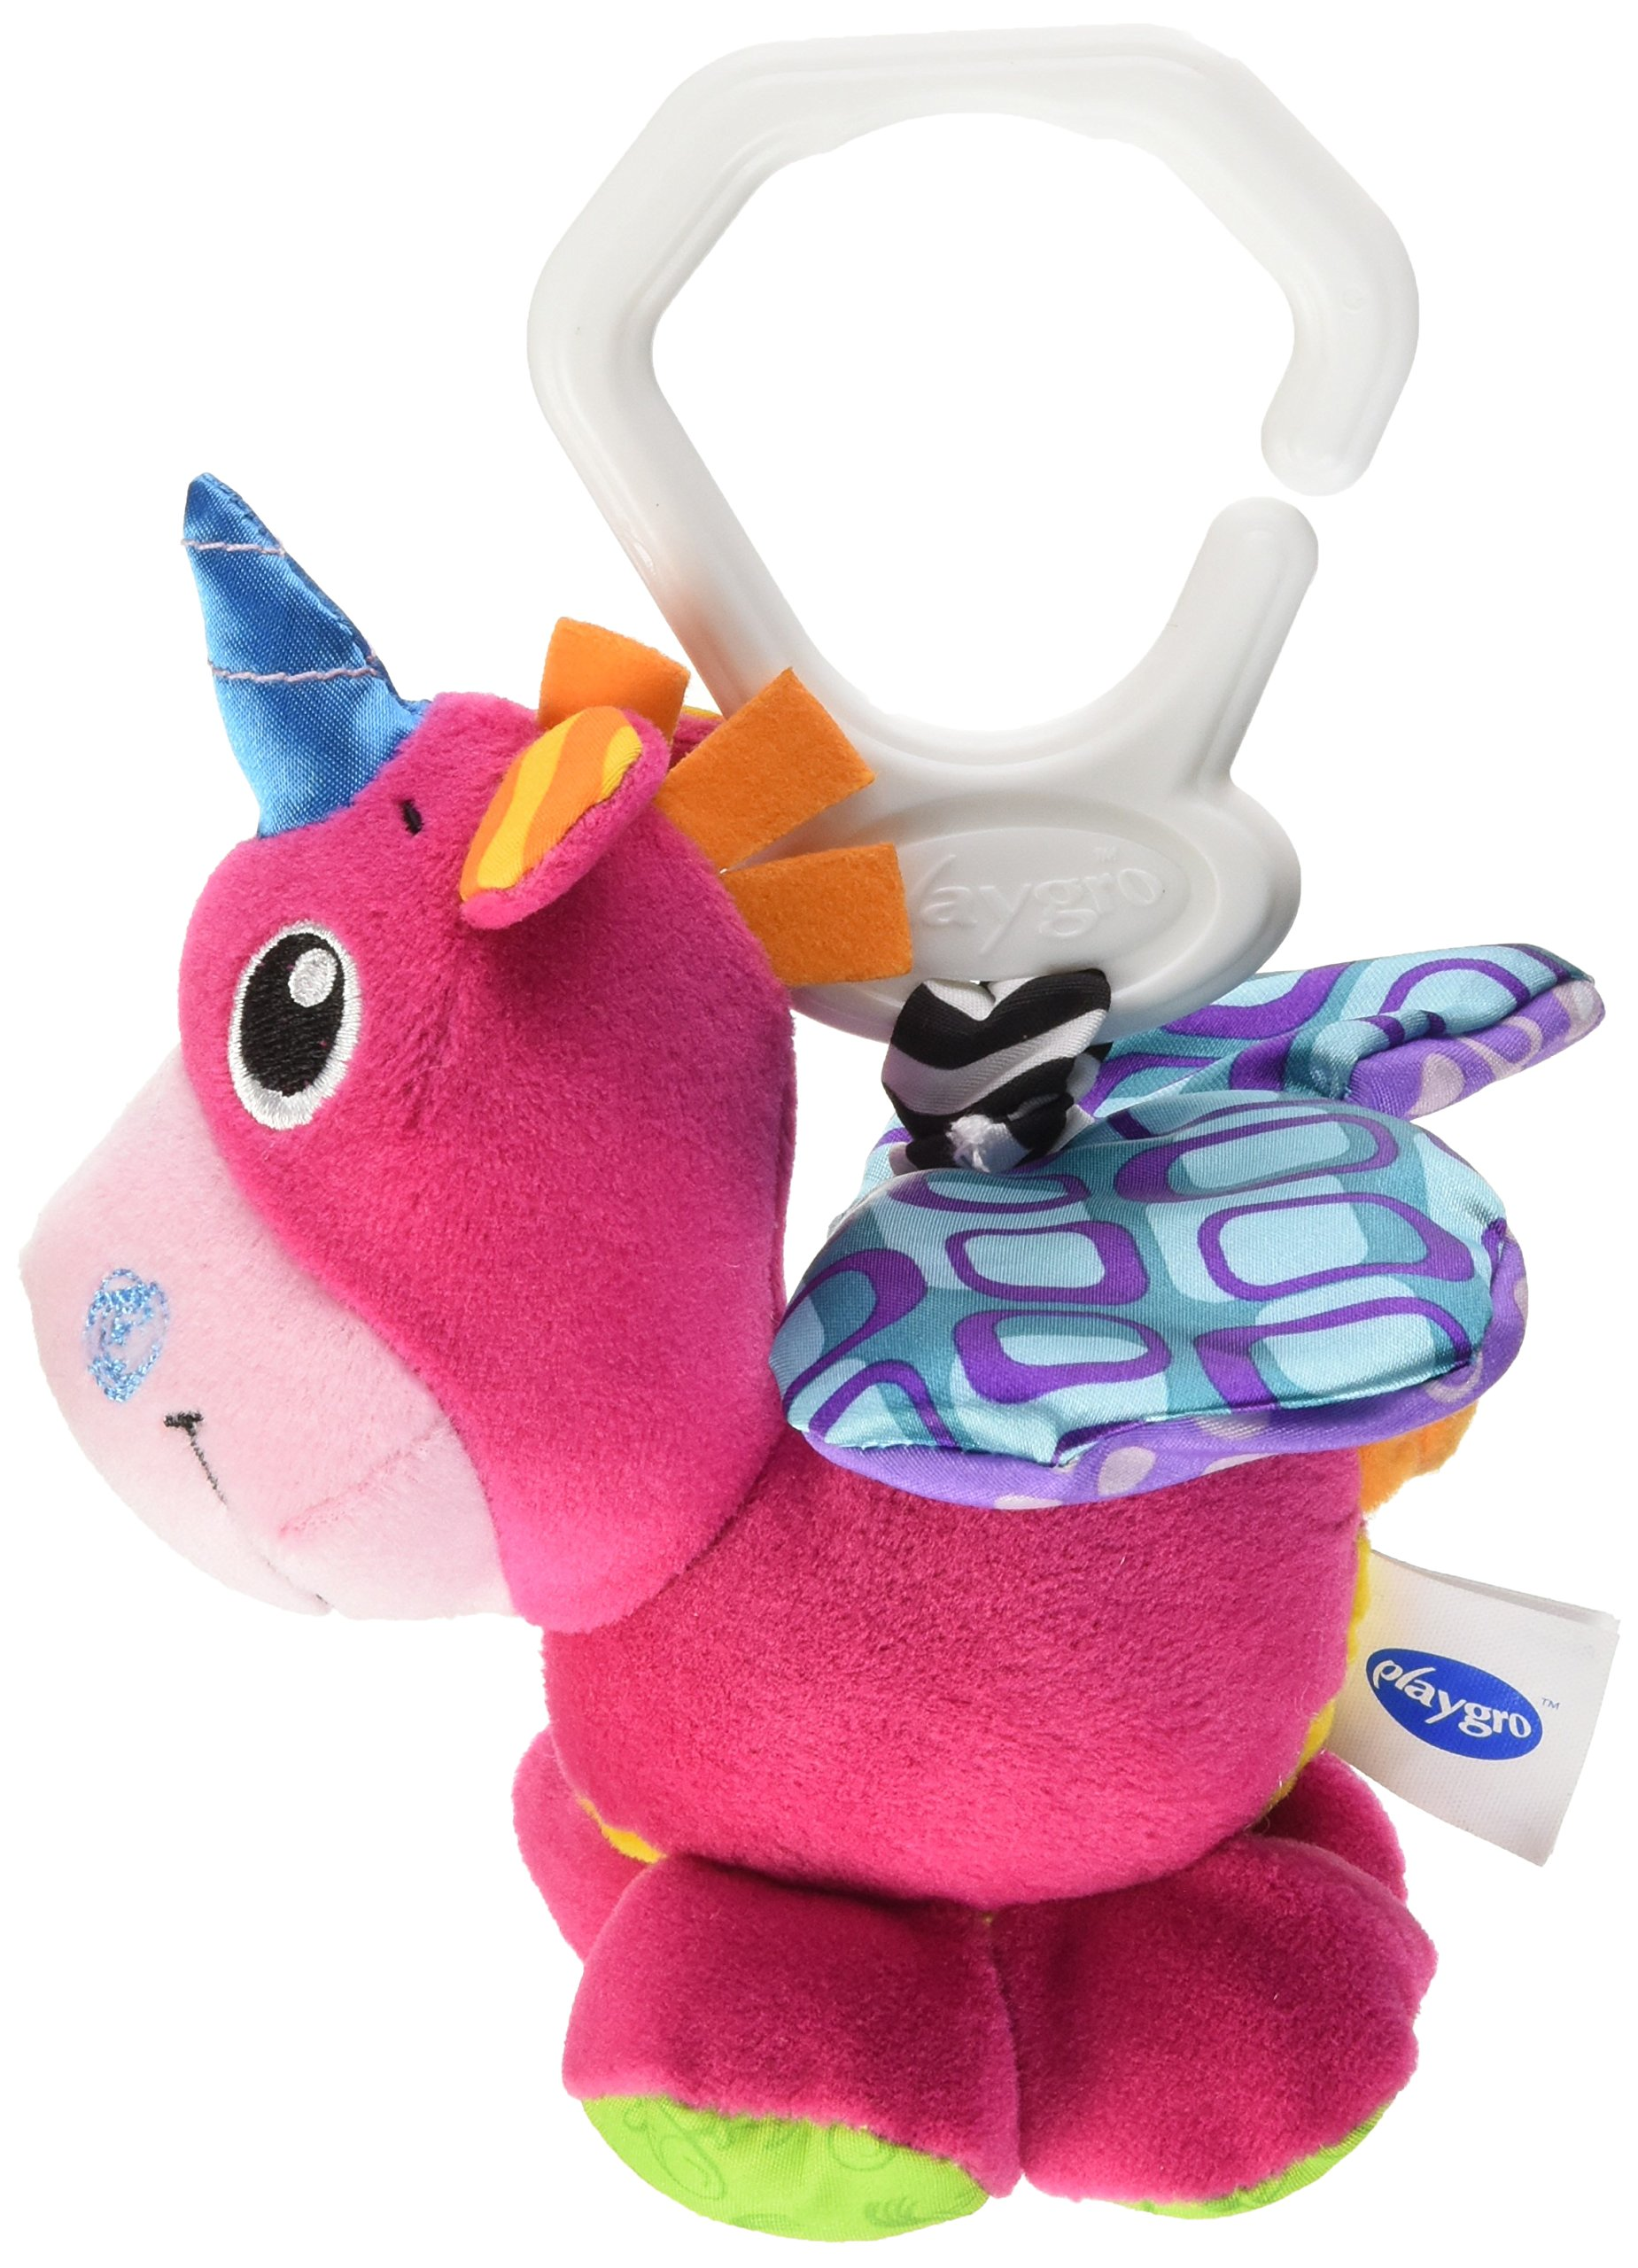 Playgro 0183049 Baby Pull Toy, Flapping Wings Groovy Mover Unicorn